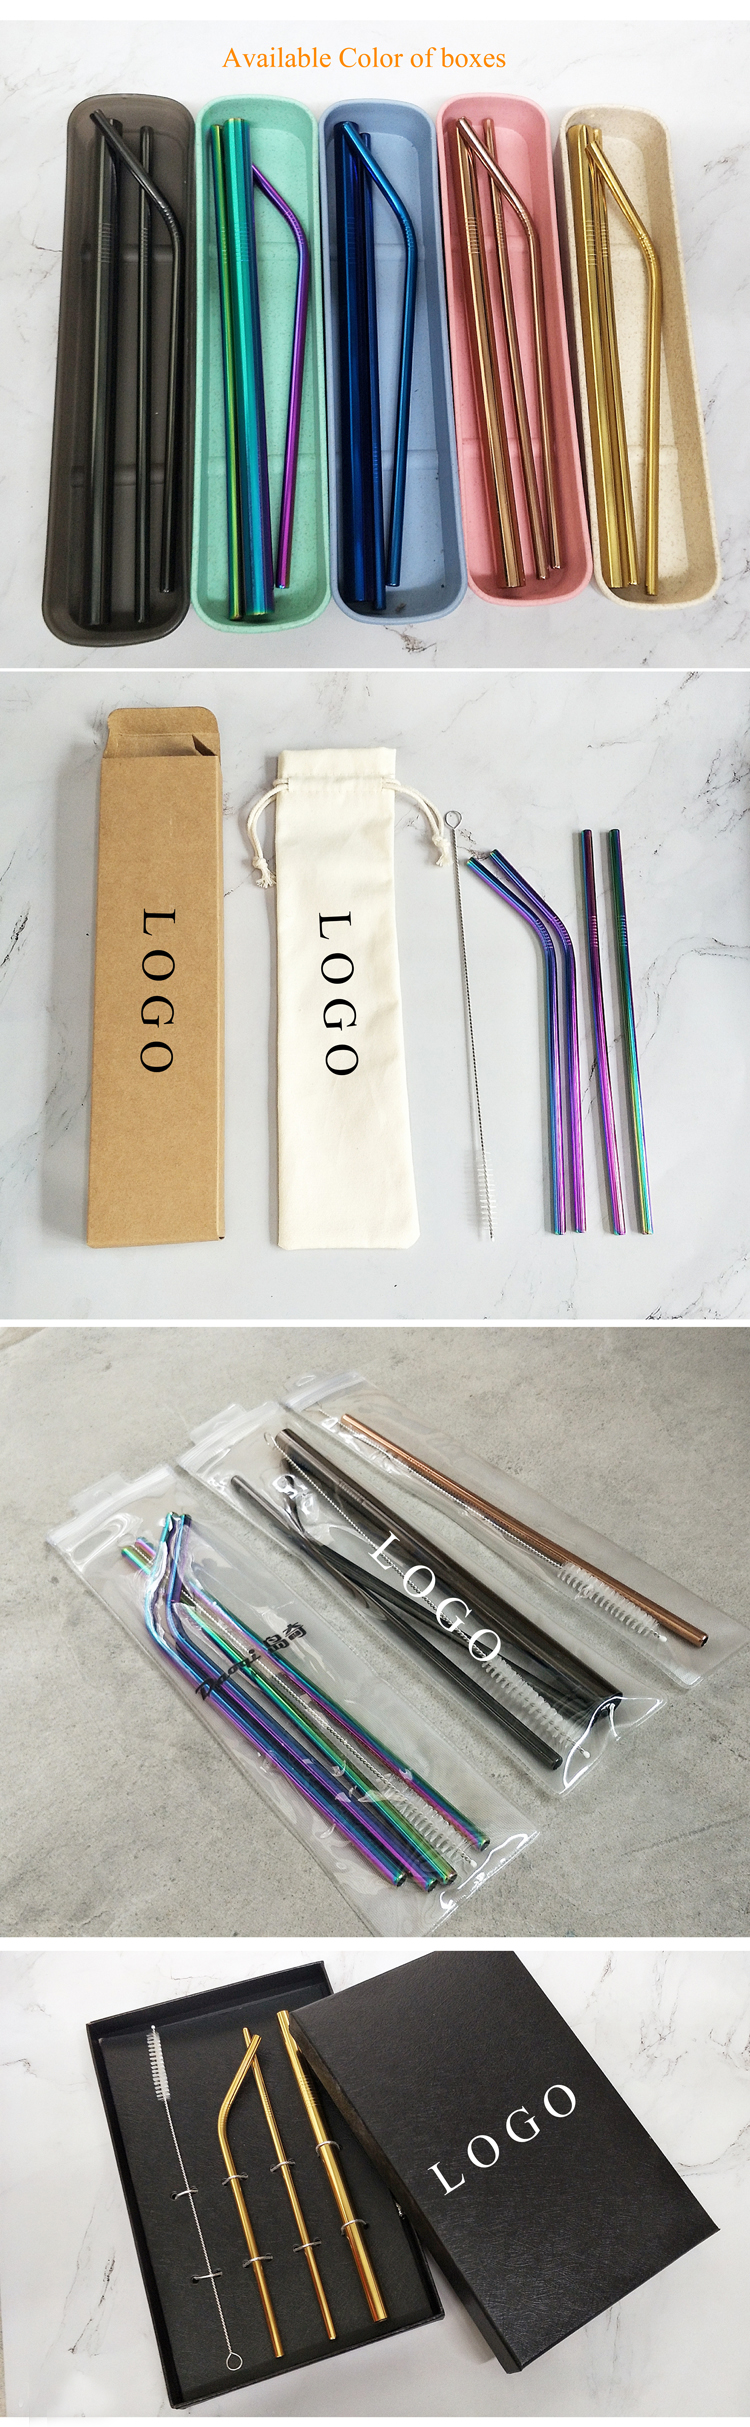 wholesale 304 stainless steel drinking straws , eco-friendly reusable metal stirrer spoon straw set